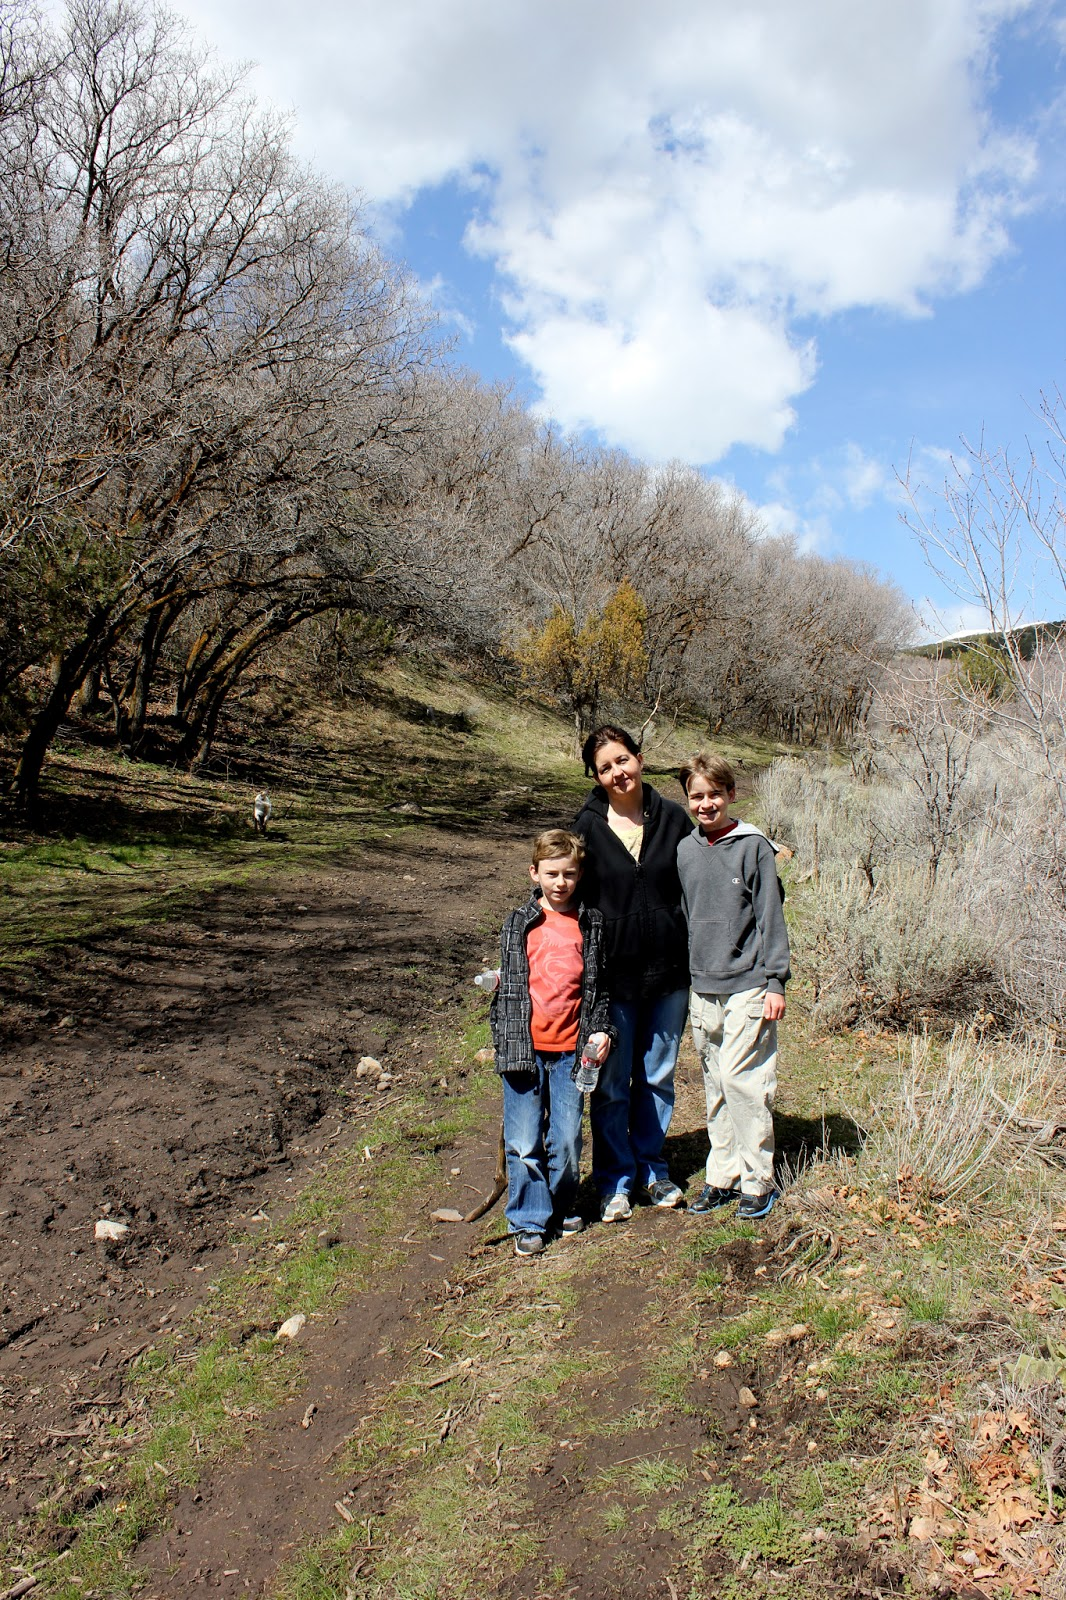 Family Hike with Hiking App / Squibs and Crackers